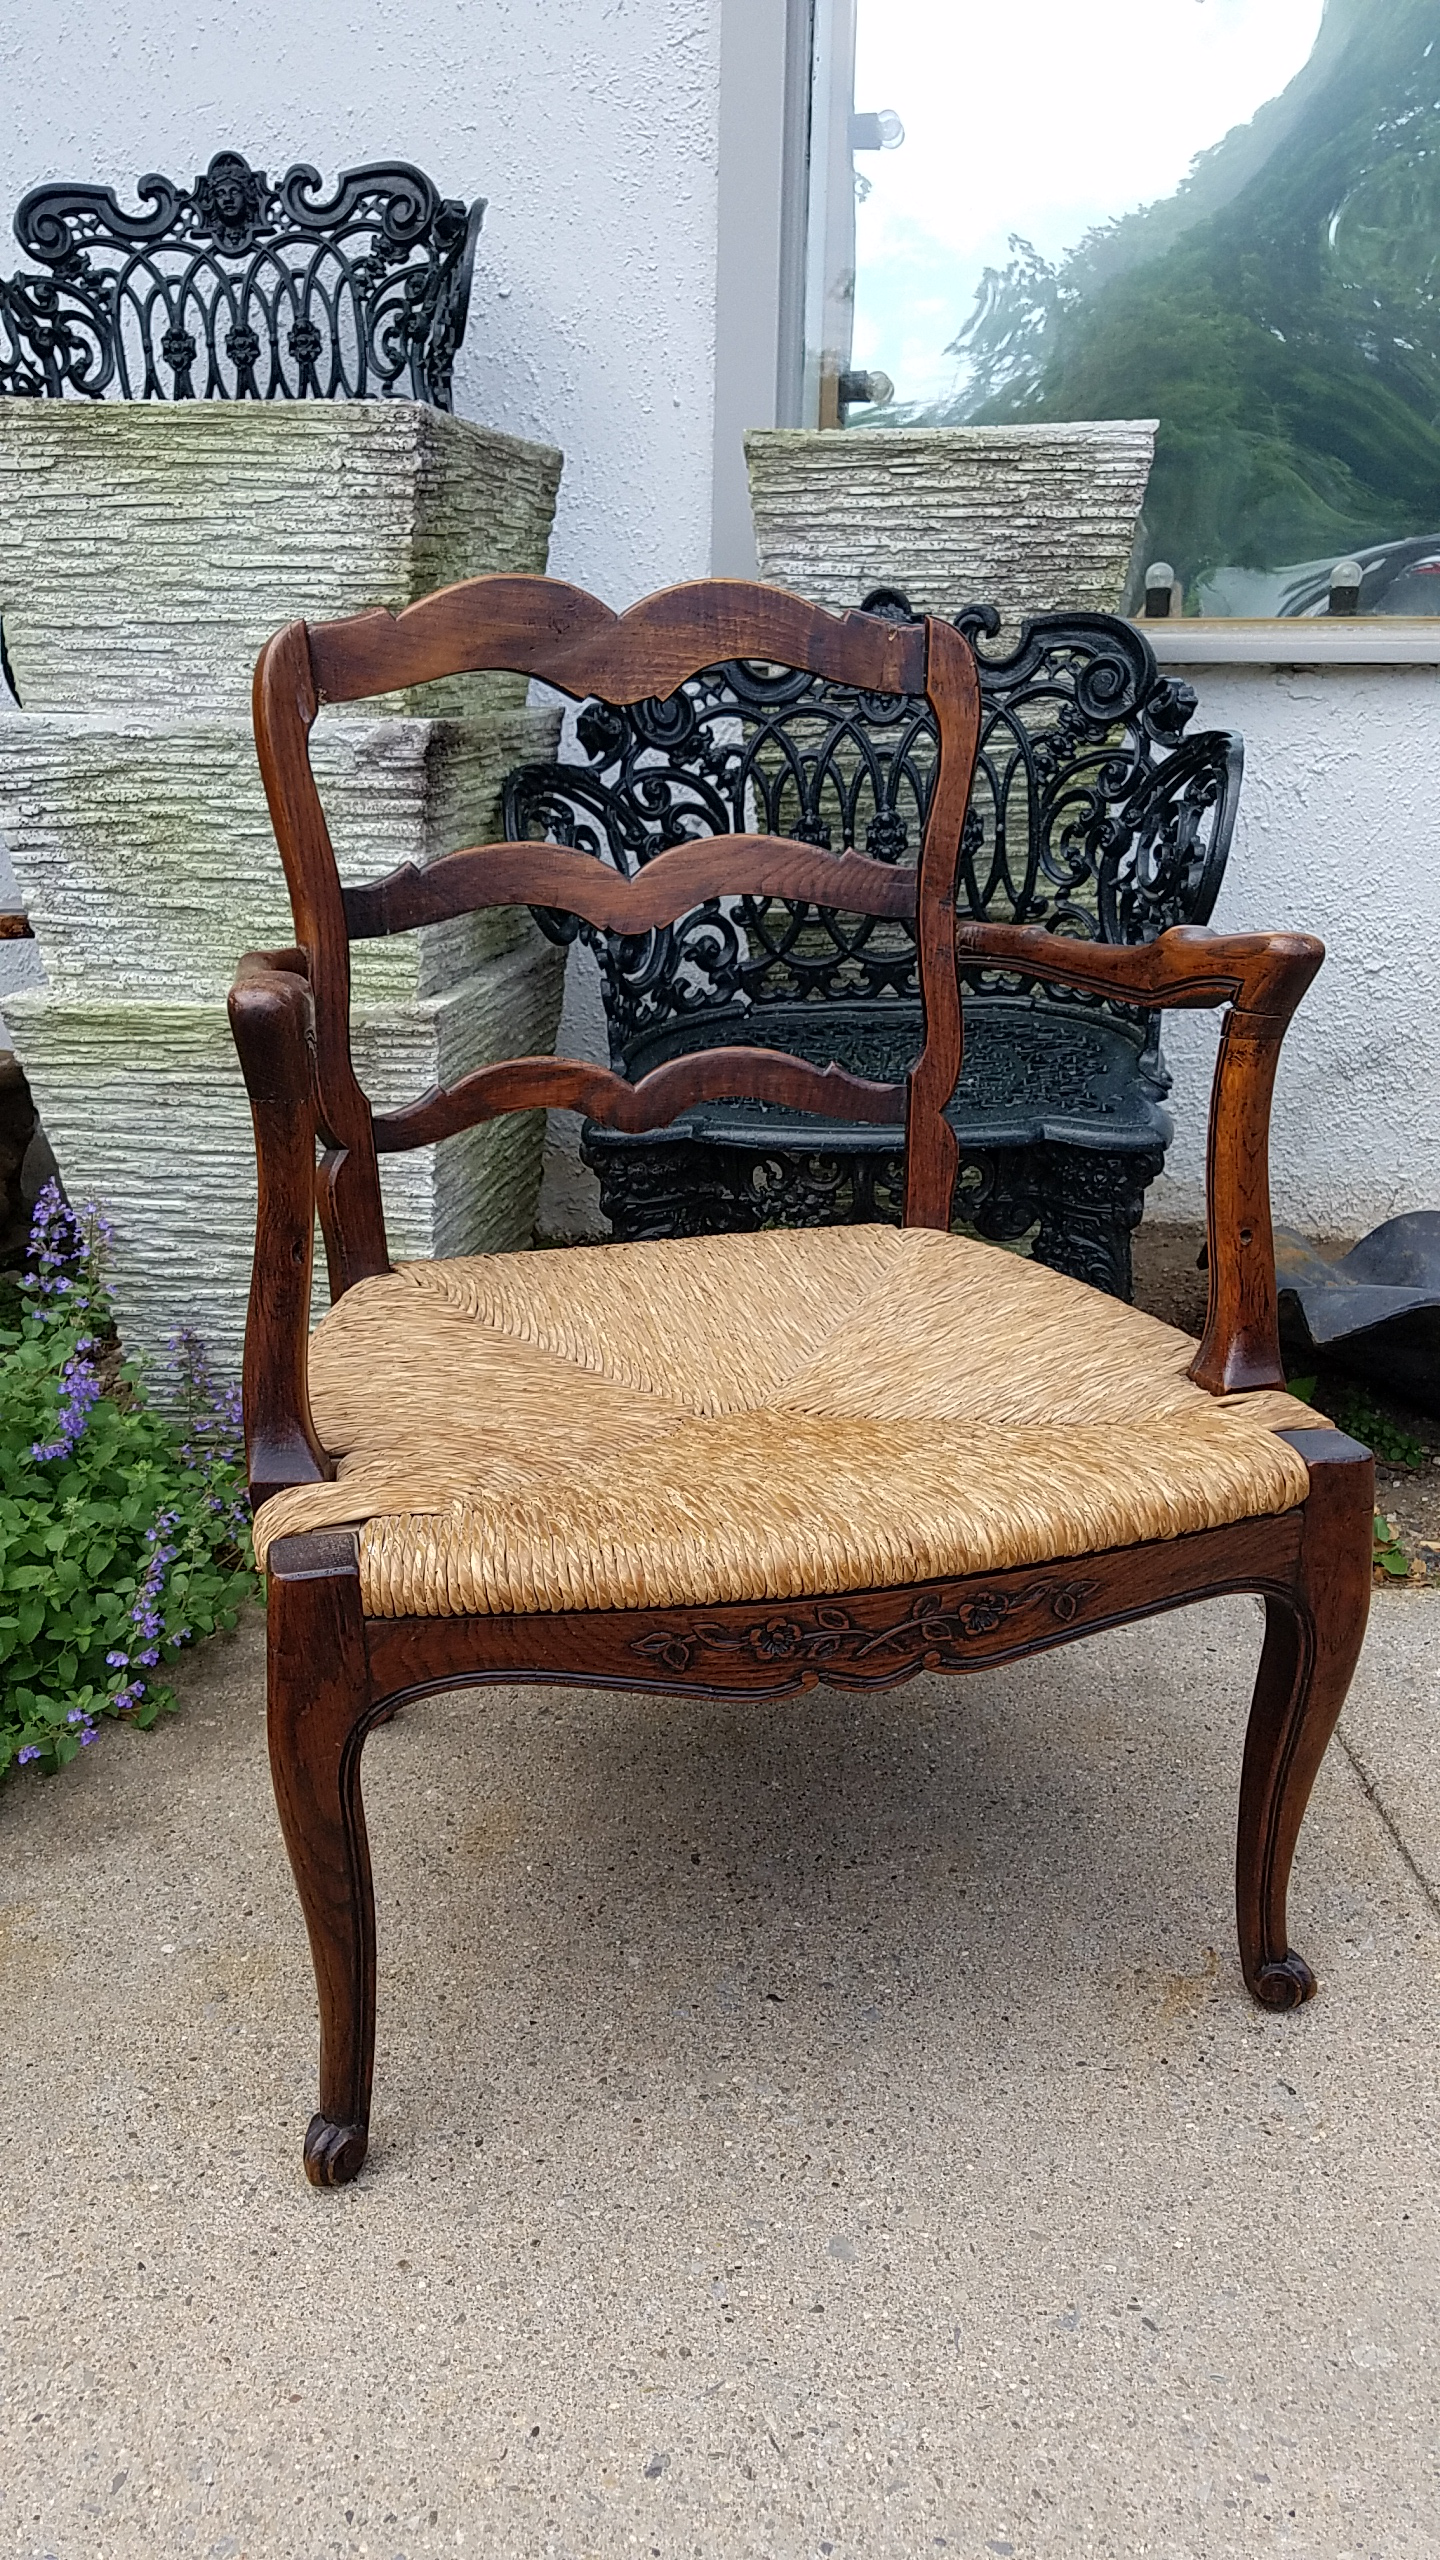 French Antique Ladderback Arm Chair With Cane Seat   Image 2 Of 6